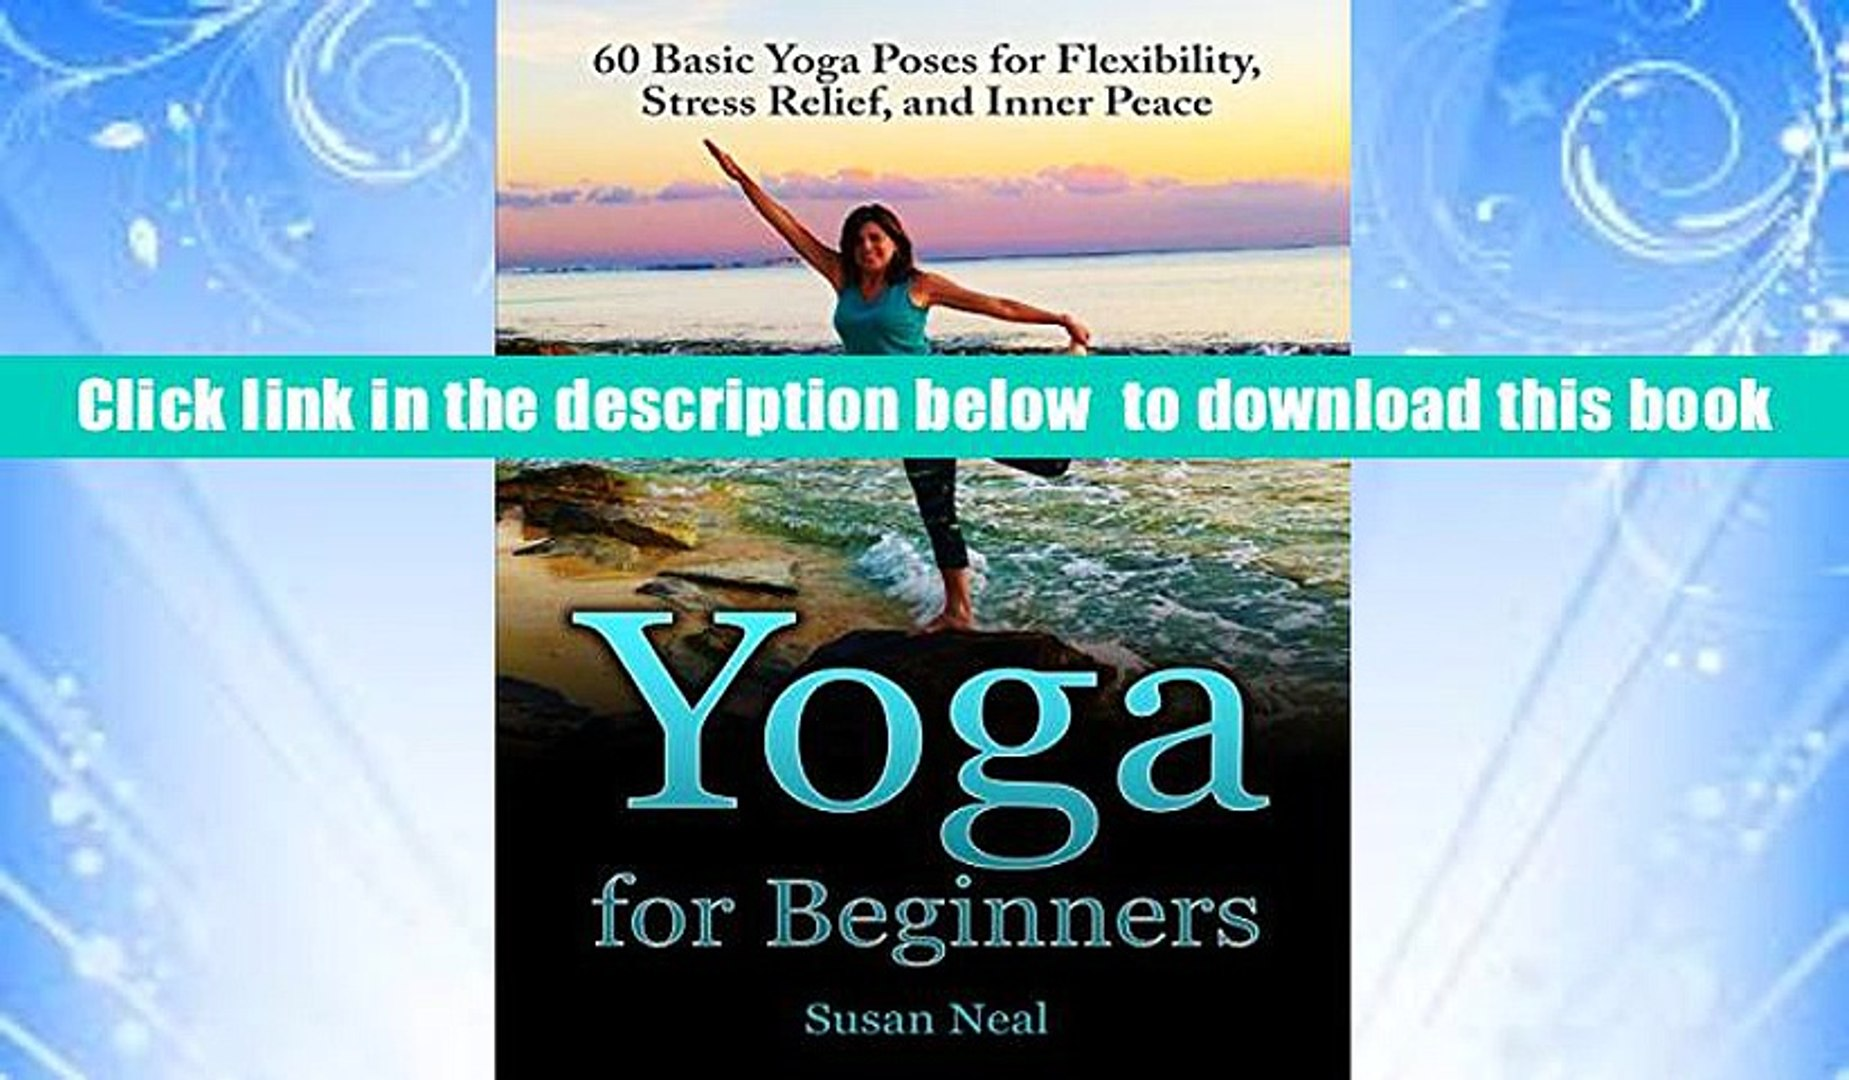 Audiobook Yoga For Beginners 60 Basic Yoga Poses For Flexibility Stress Relief And Inner Peace Video Dailymotion